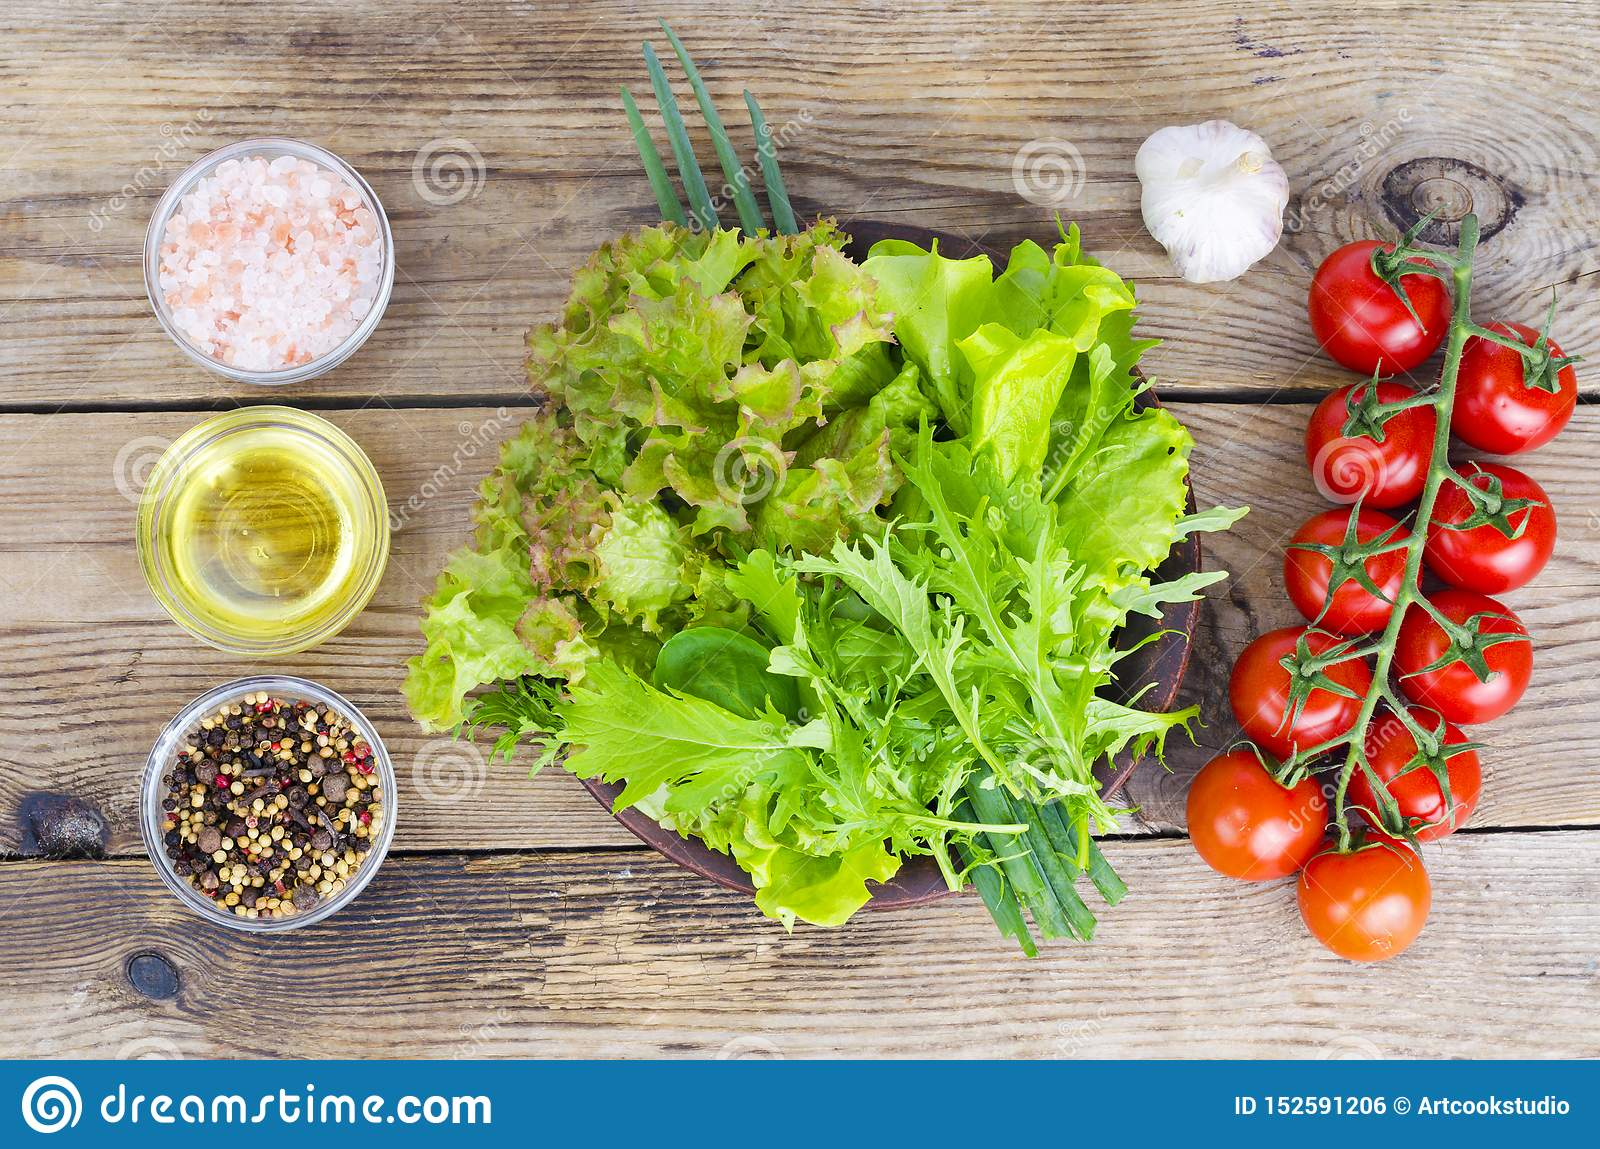 Green salad ingredients organic lettuce, cherry tomatoes, spices and olive oil on wooden background.